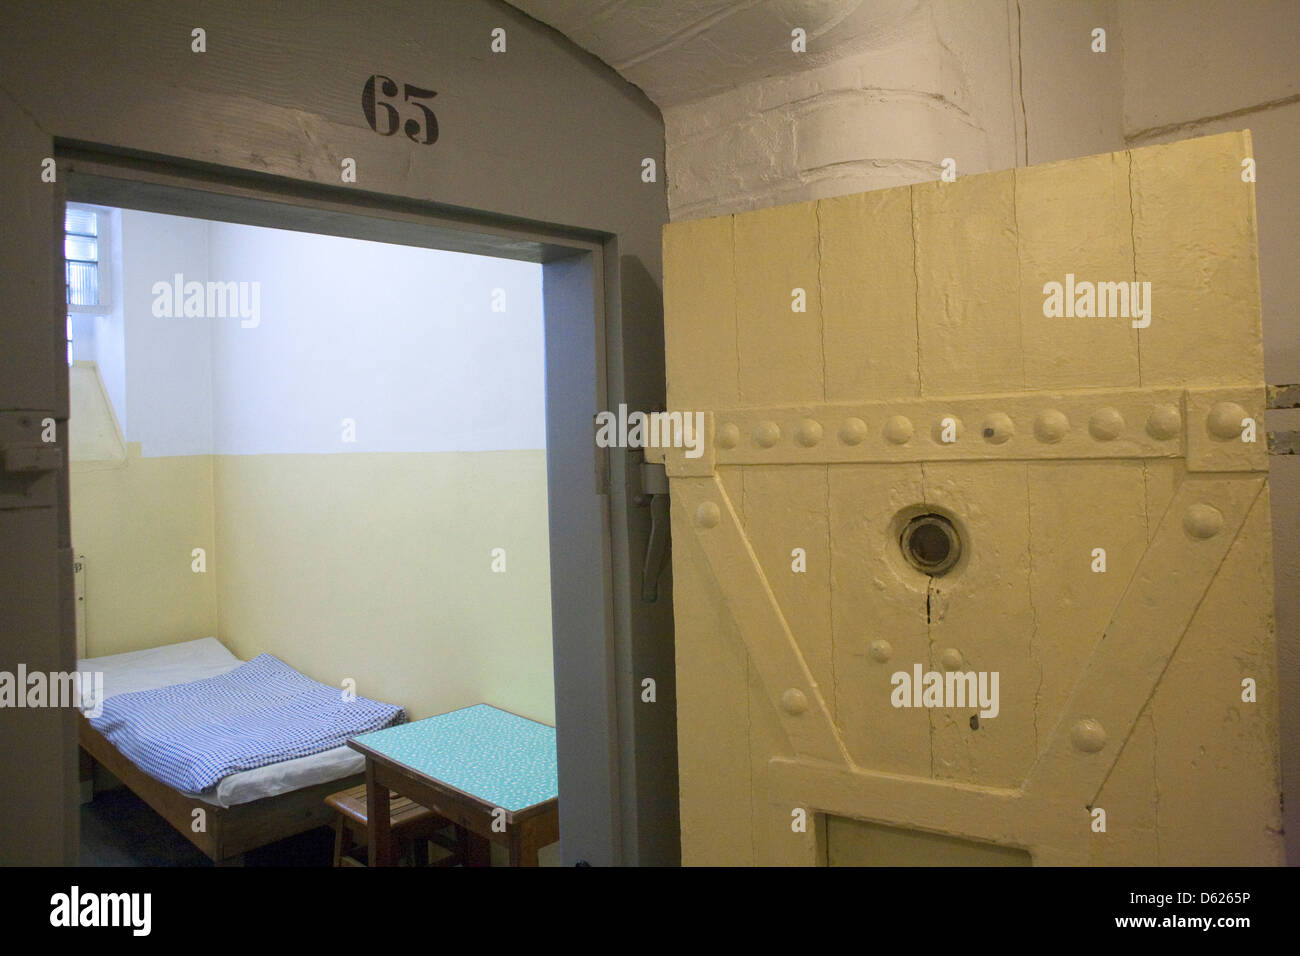 Display in Stasi Museum dedicated to exposing the oppressive rule of Germany's secret police during the post Stock Photo